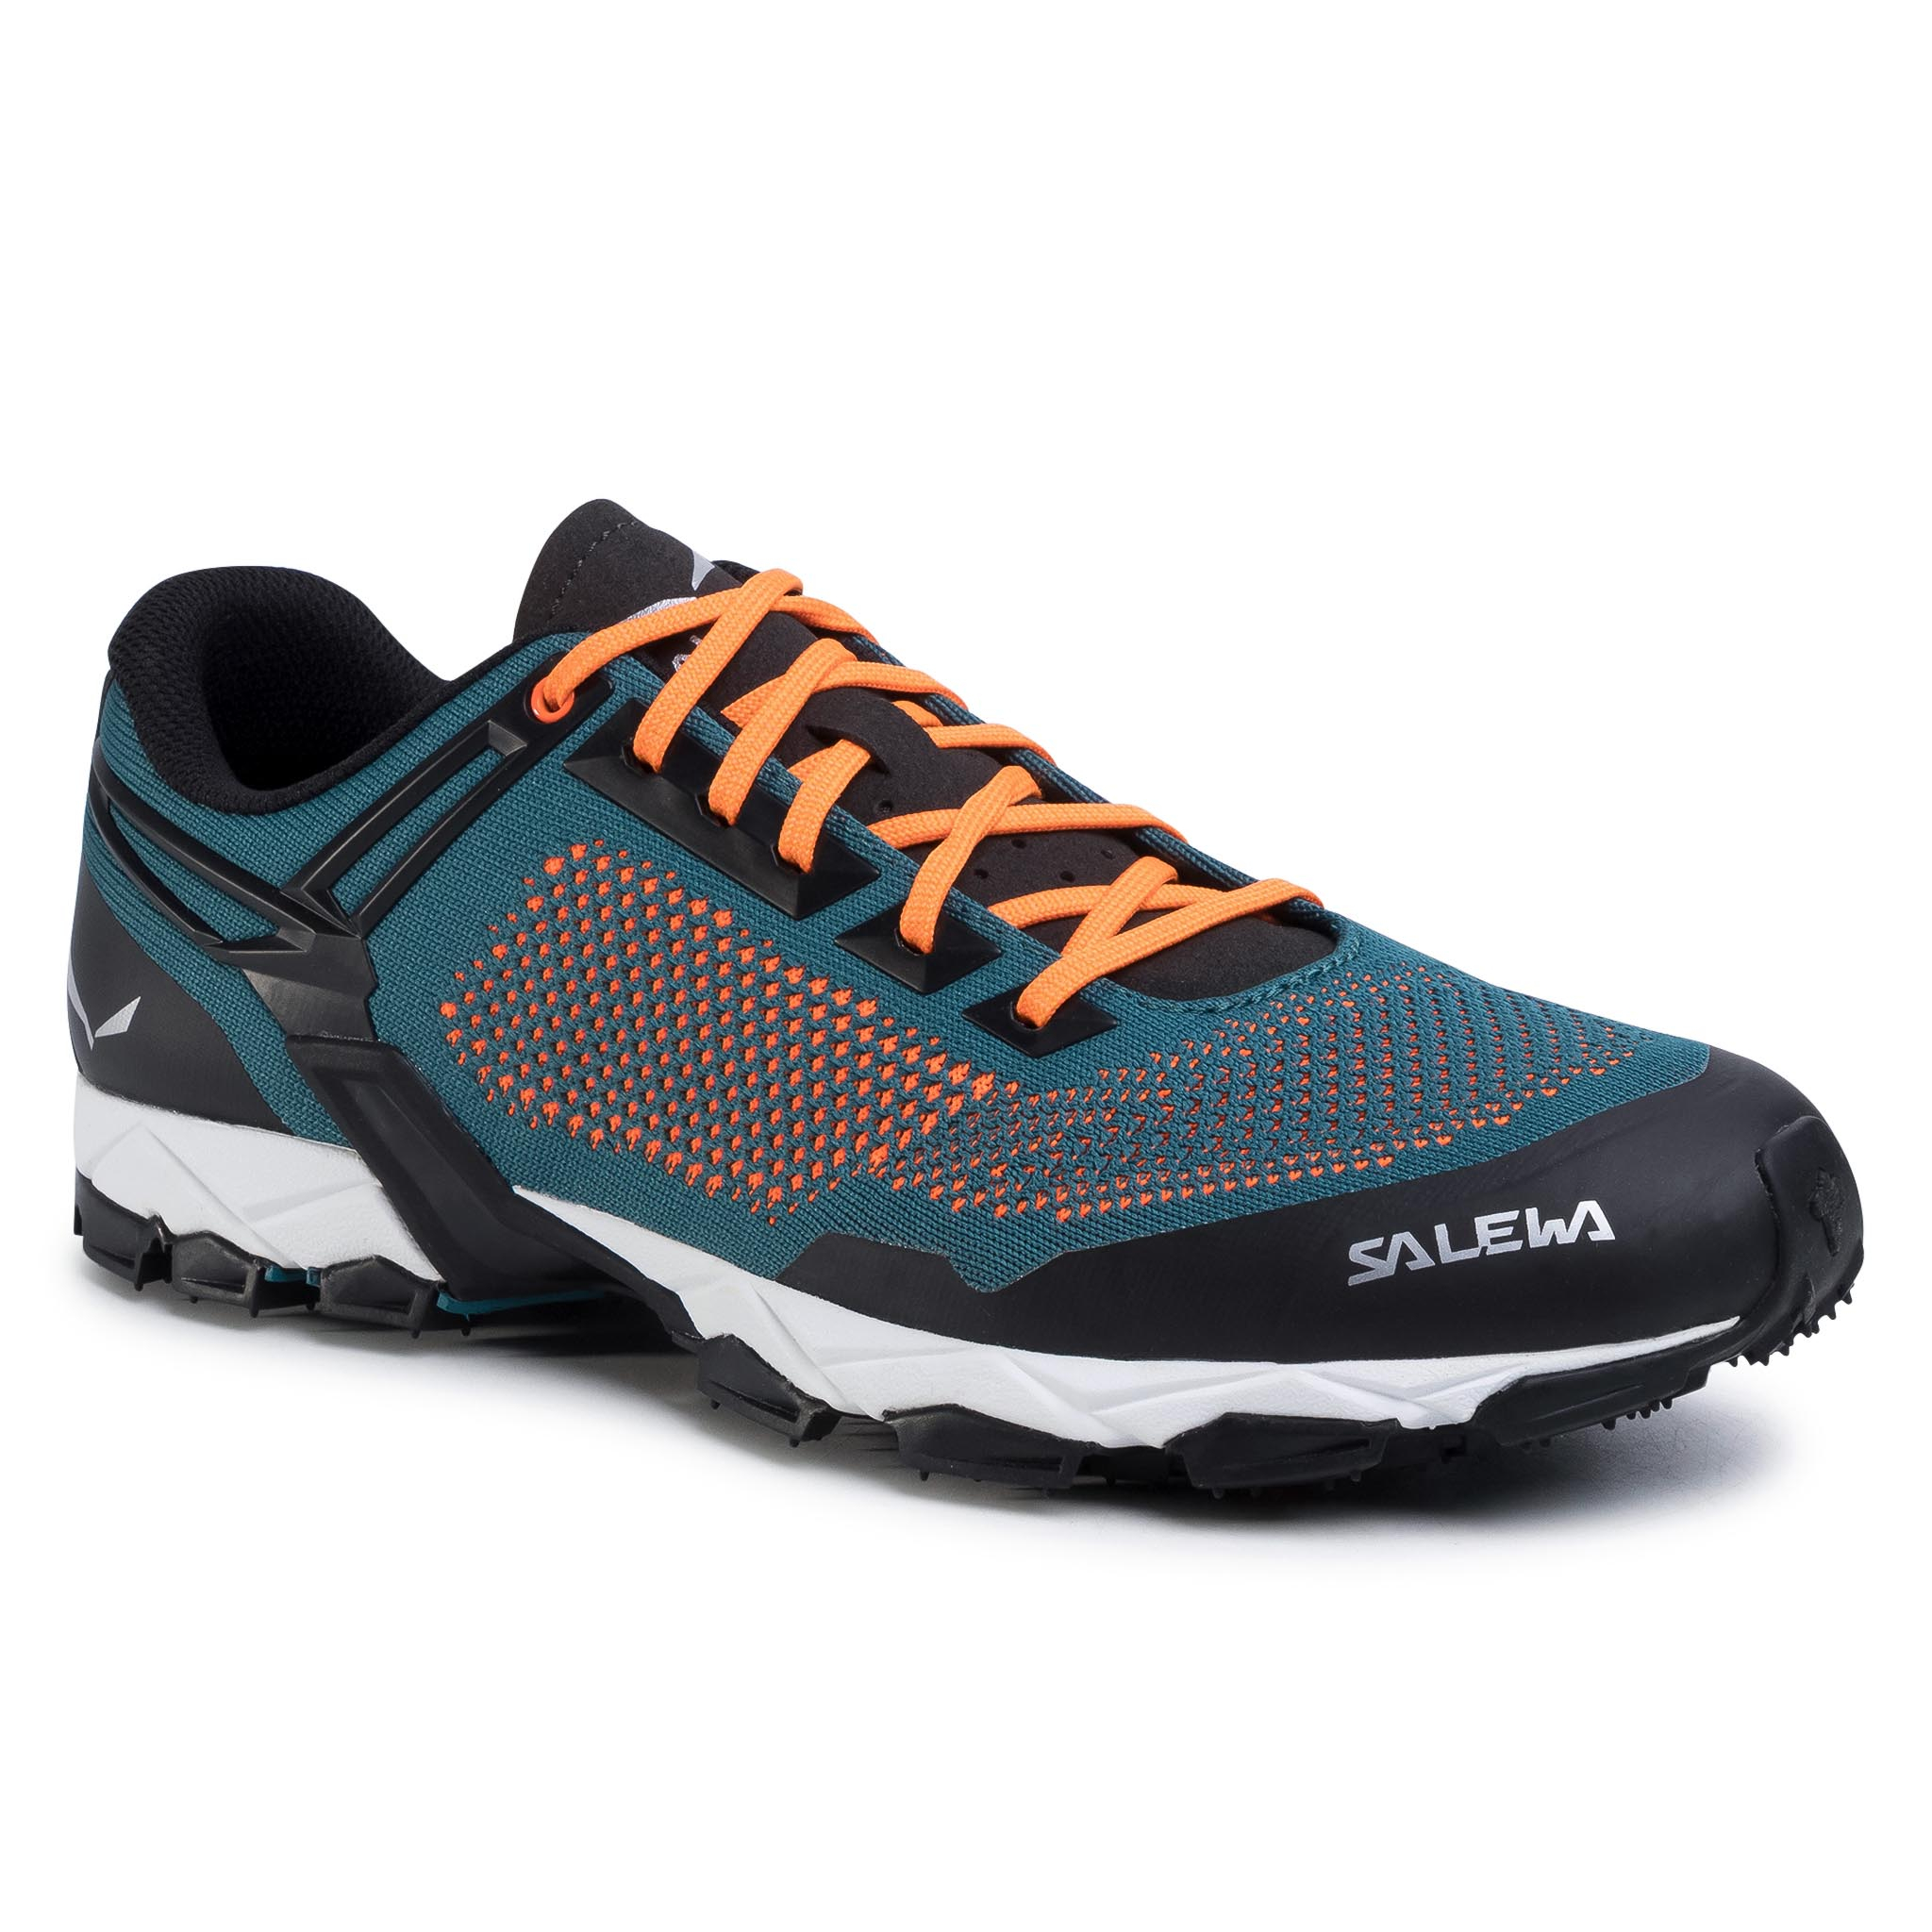 Trekkings Salewa - Lite Train K 61348-8748 Malta/Fluo Orange 8748 imagine epantofi.ro 2021